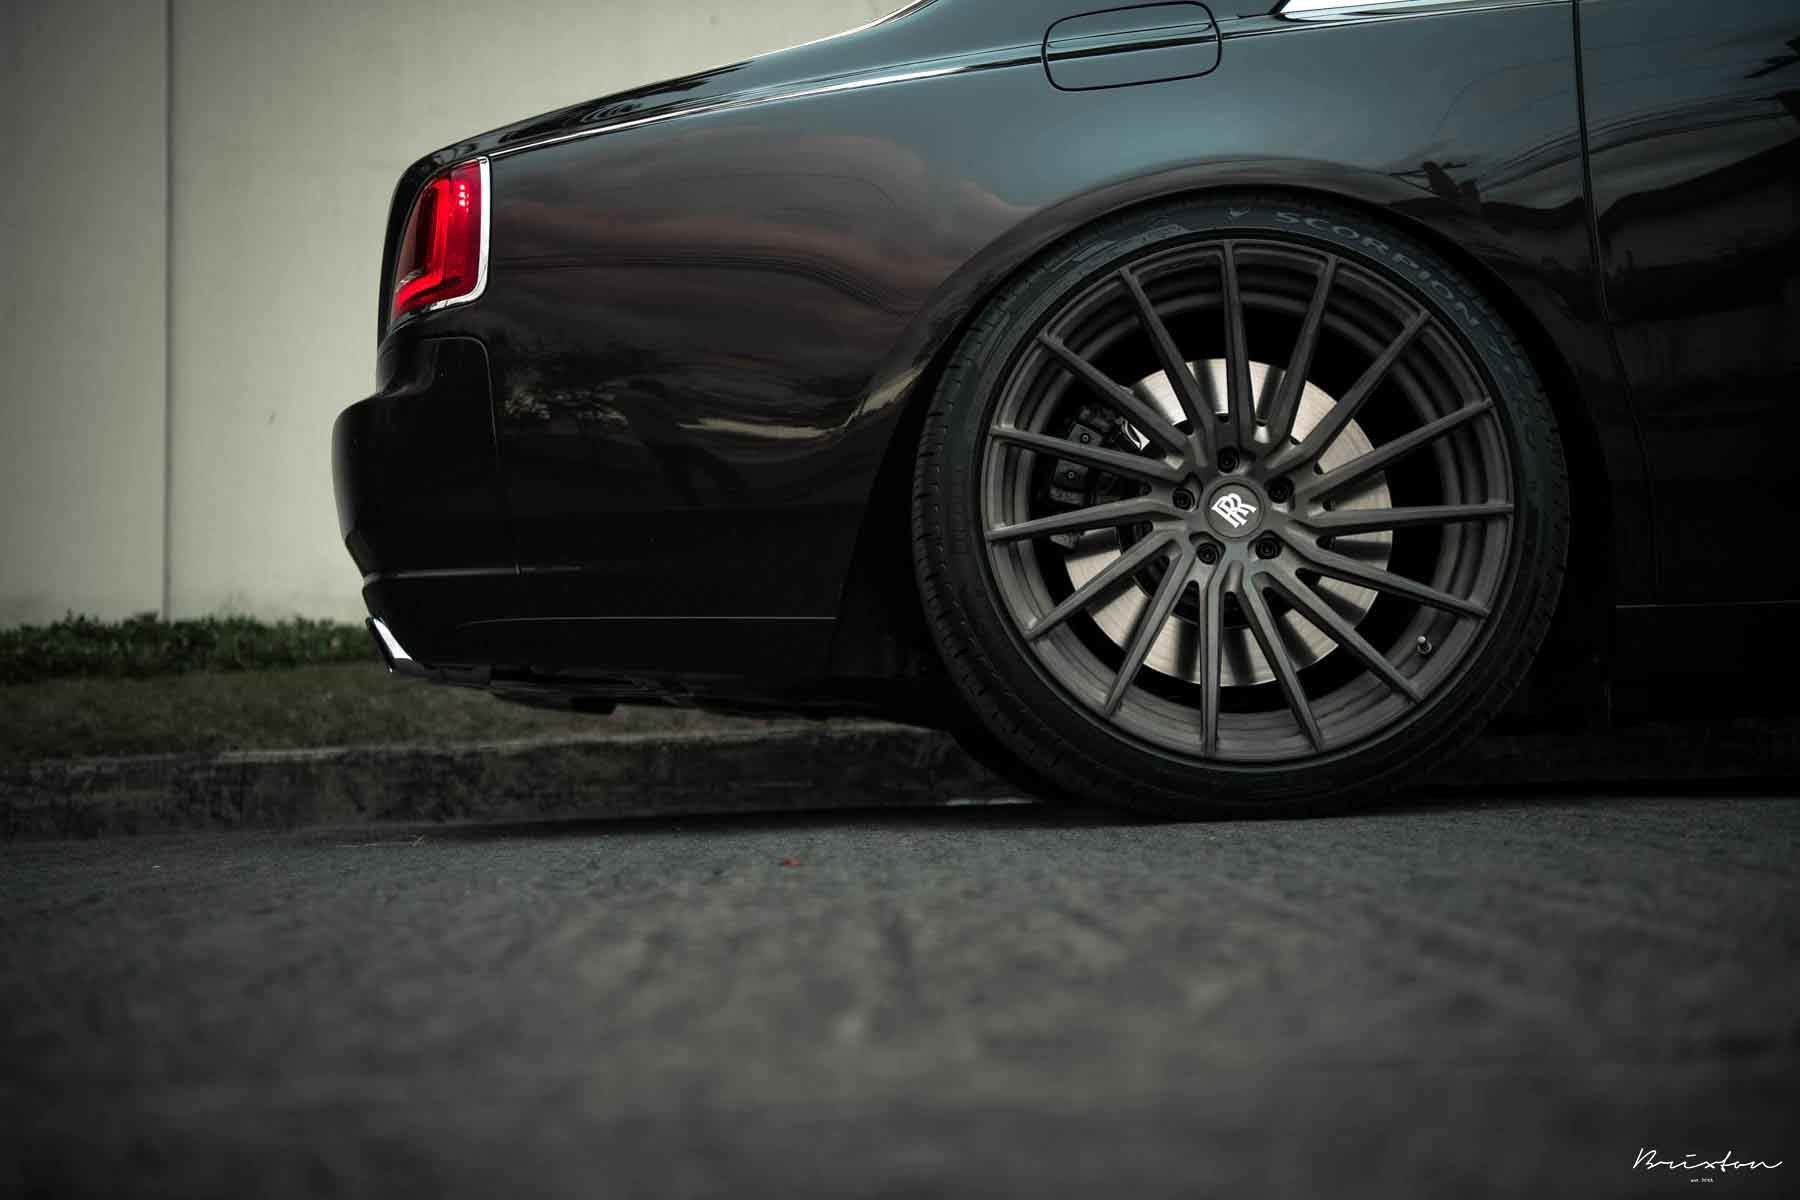 images-products-1-2921-232975209-black-rolls-royce-ghost-brixton-forged-r15-ultrasport-brushed-double-tint-satin-concave-forged-w.jpg